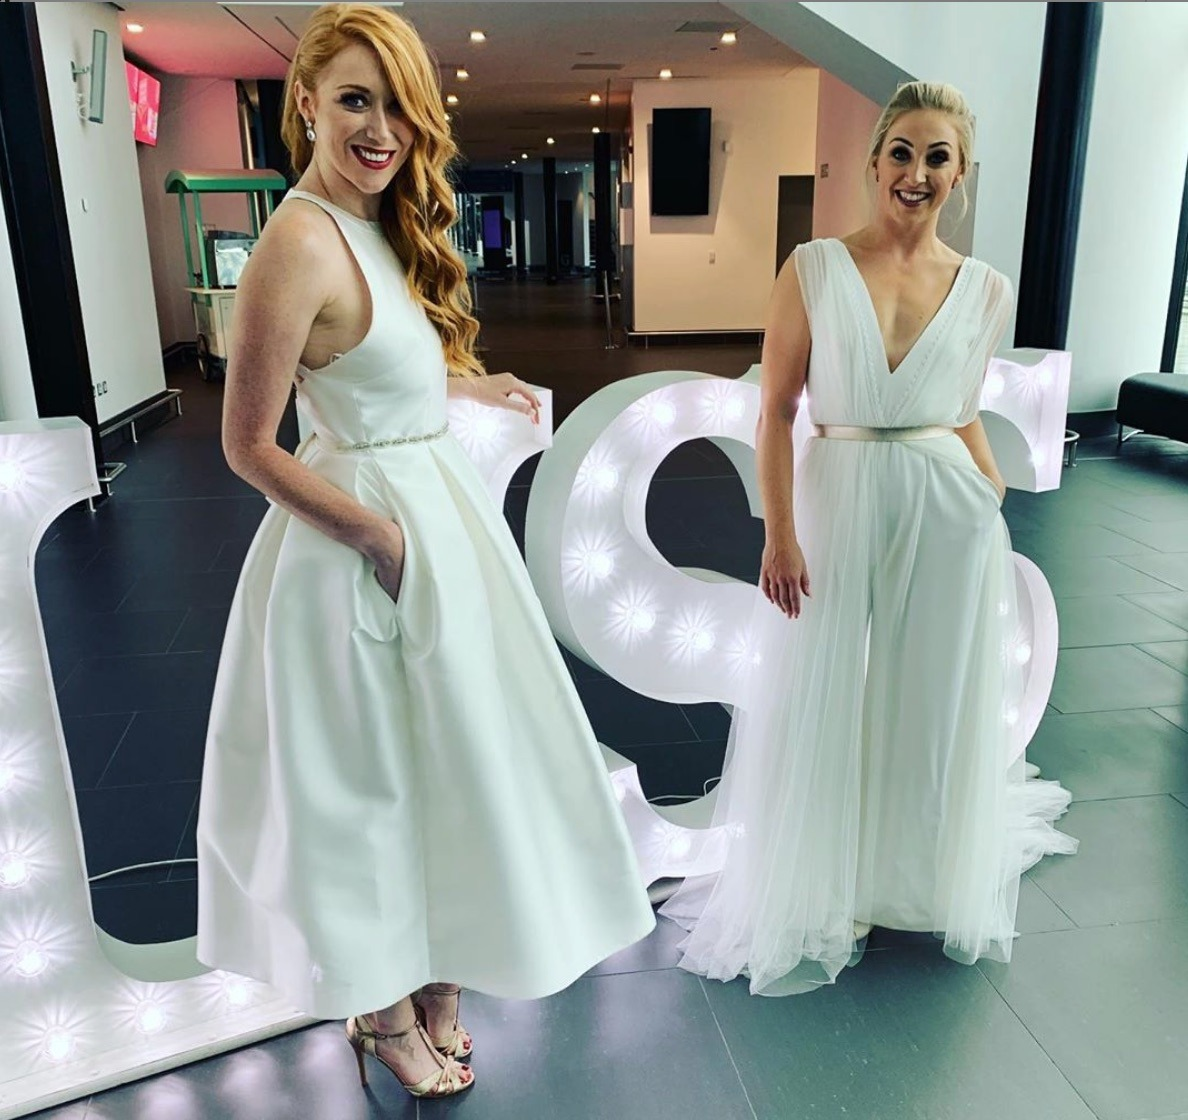 Models wearing wedding dresses by White Closet Studio in Liverpool